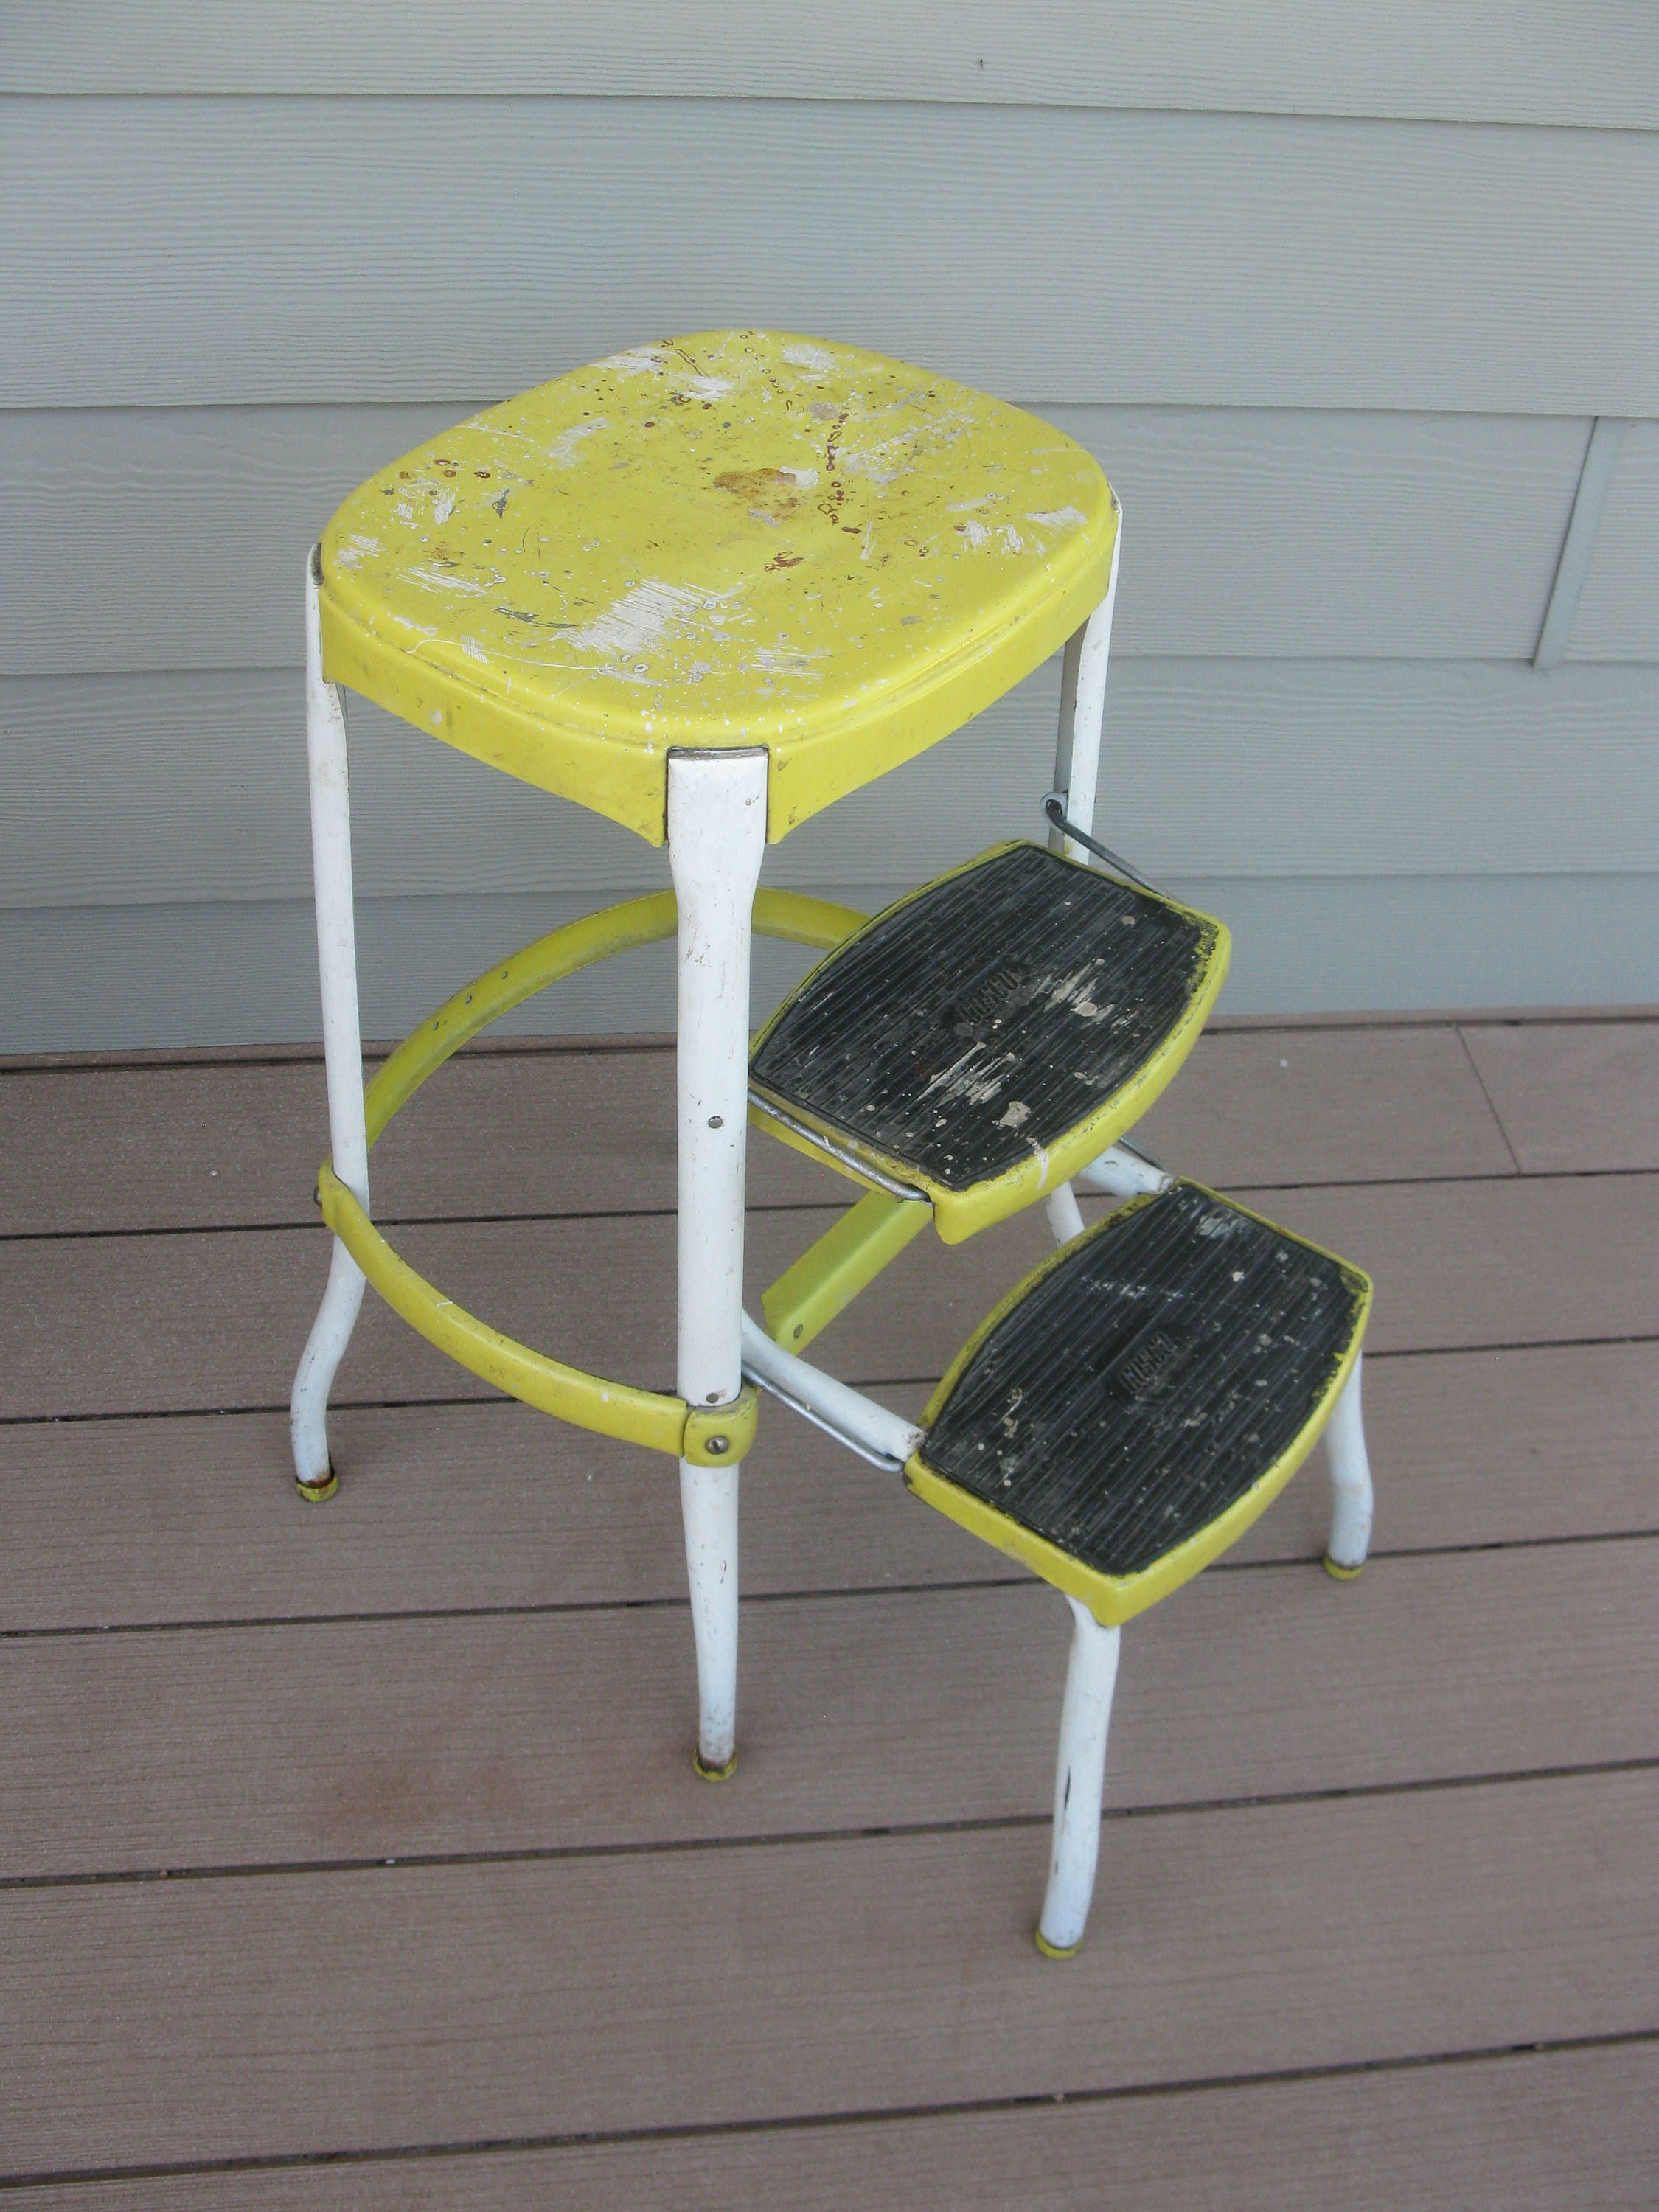 Shabby Metal Cosco Stool  Chair  Yellow  Childrens   Step Stool  Kitchen